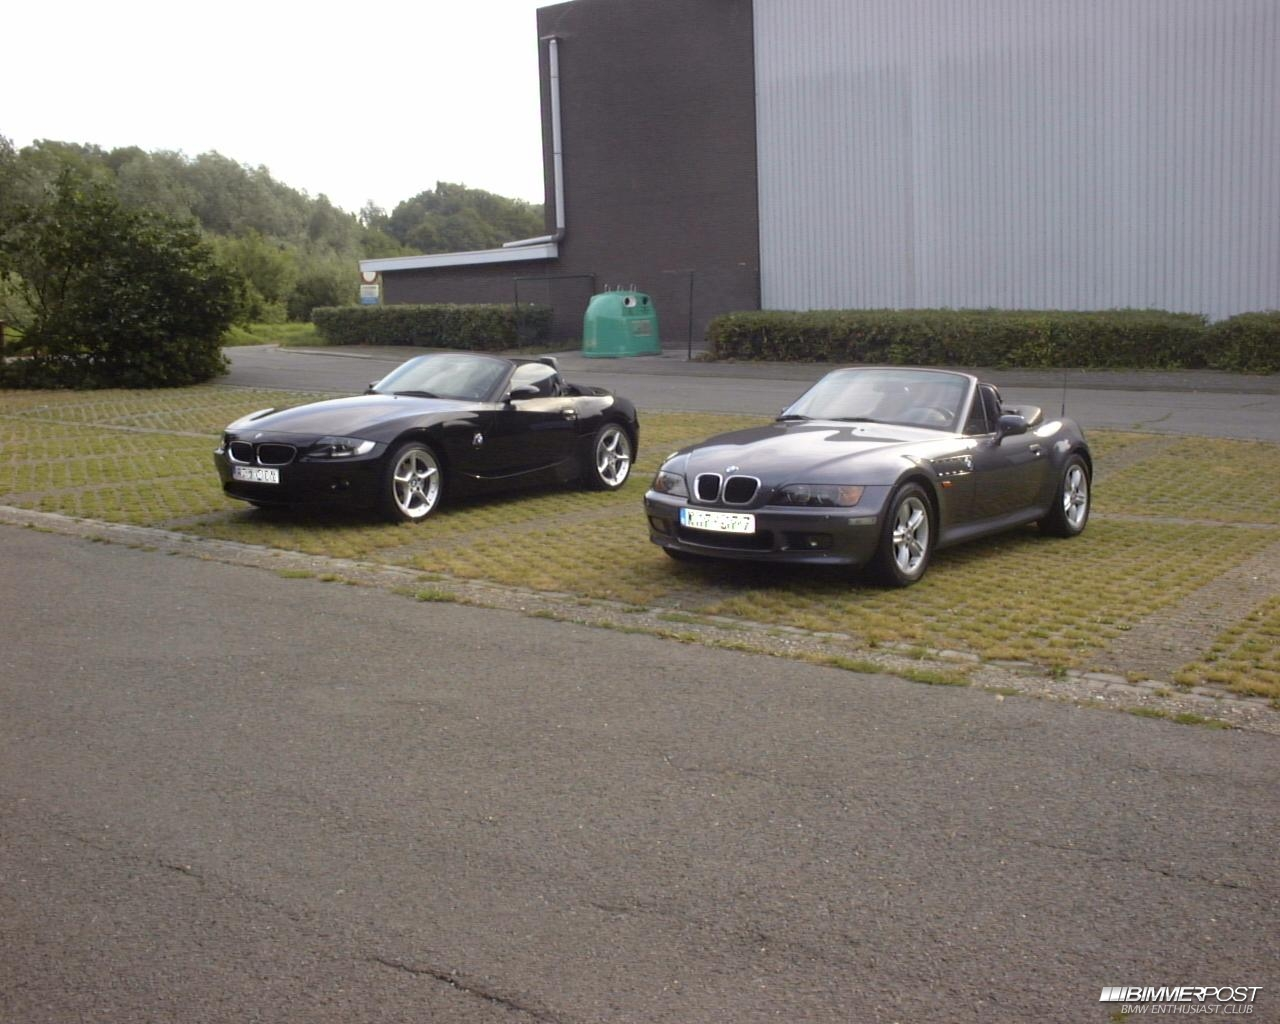 Moneyfor S 1999 Bmw Z3 E36 1 9i Bimmerpost Garage